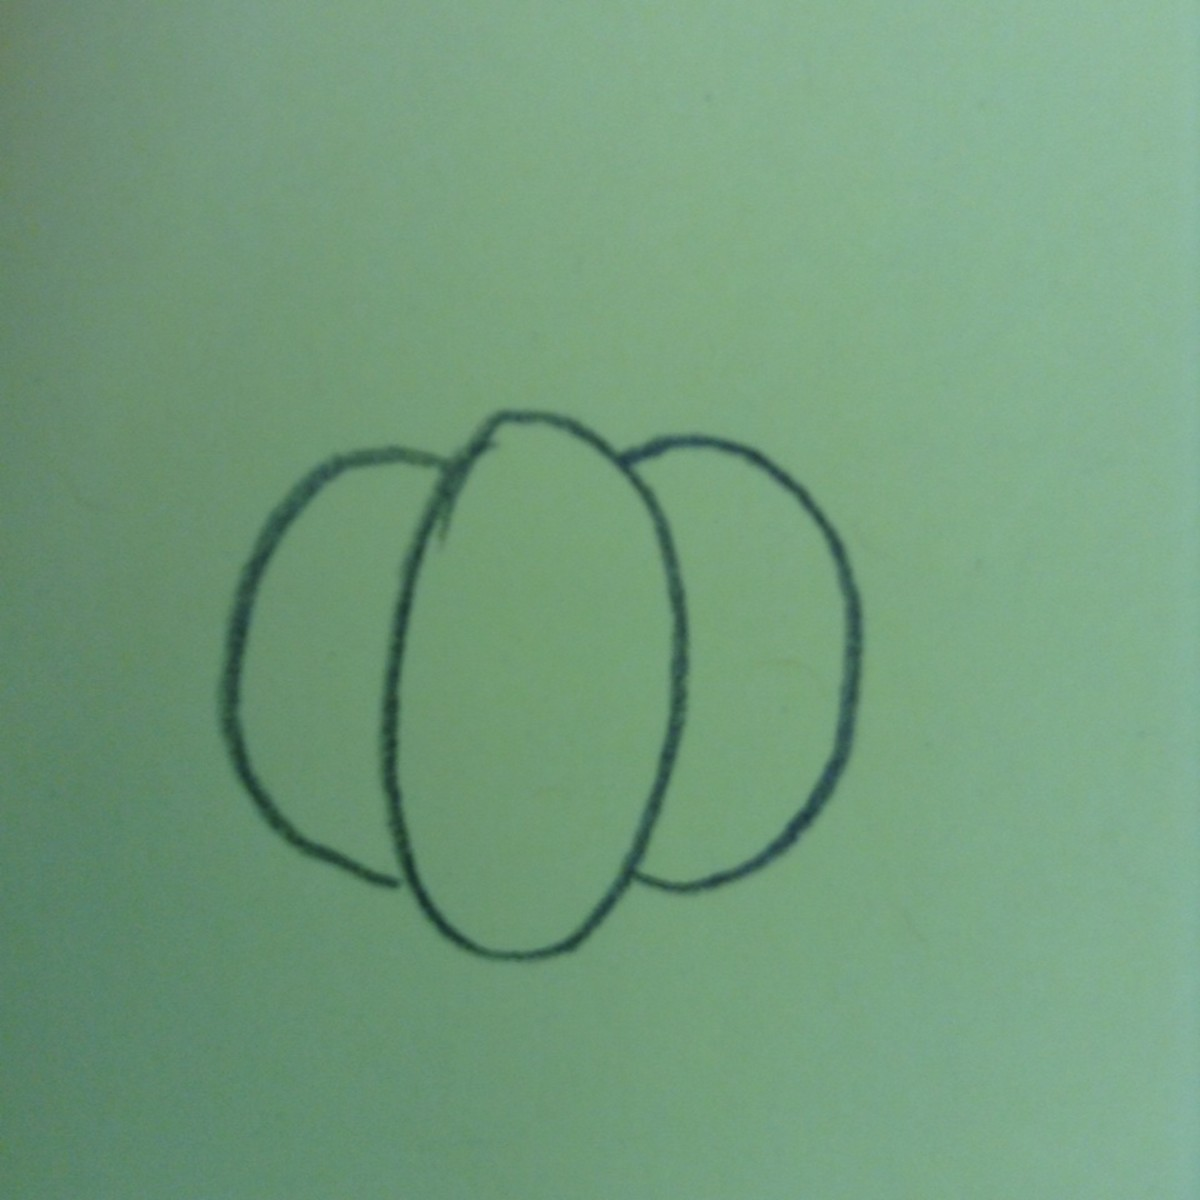 Add two curved lines on either side that are shorter than the oval.